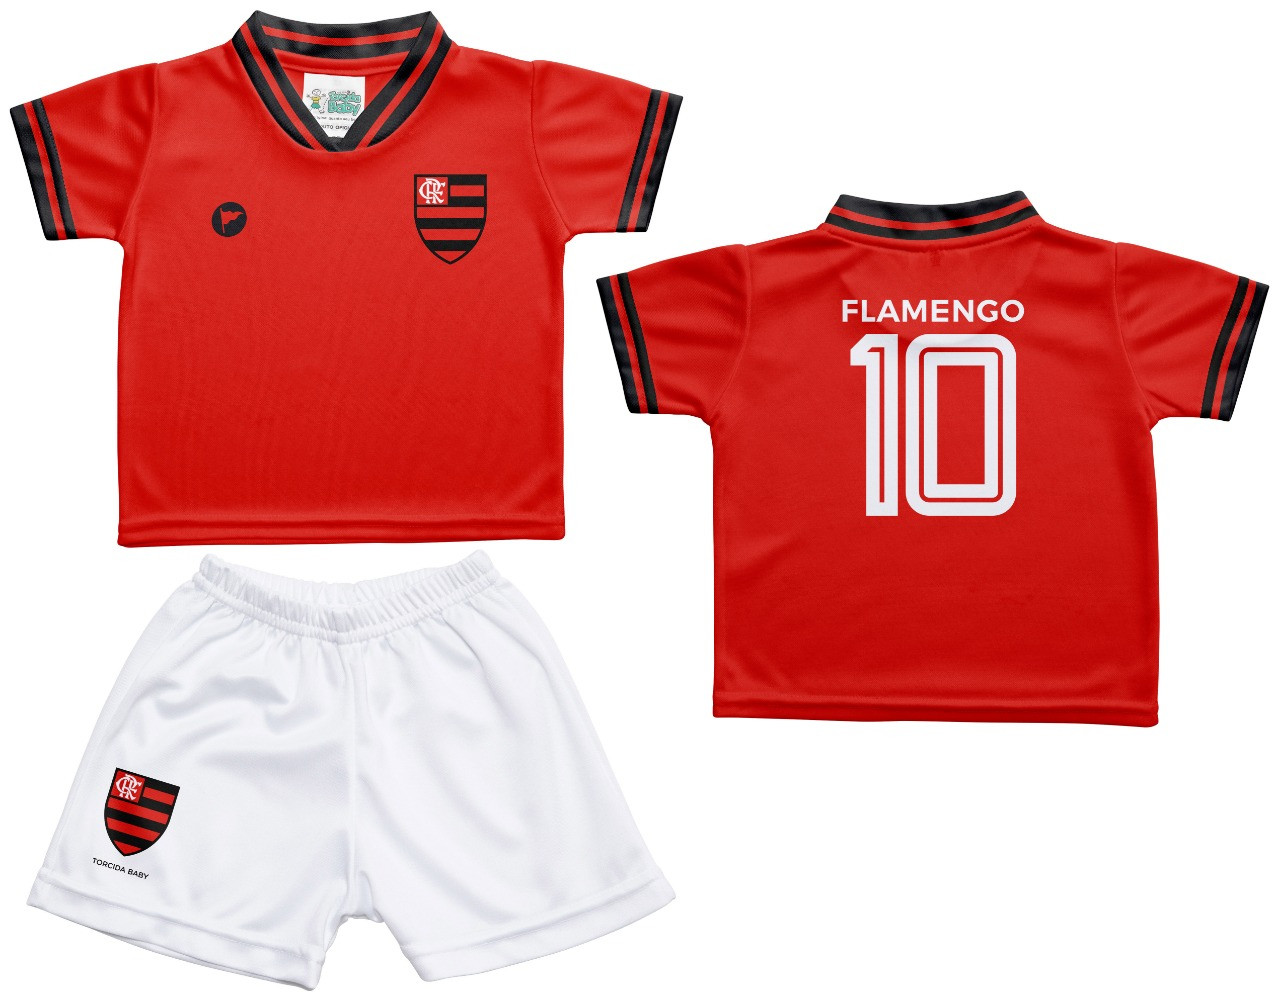 Camiseta e Shorts Flamengo